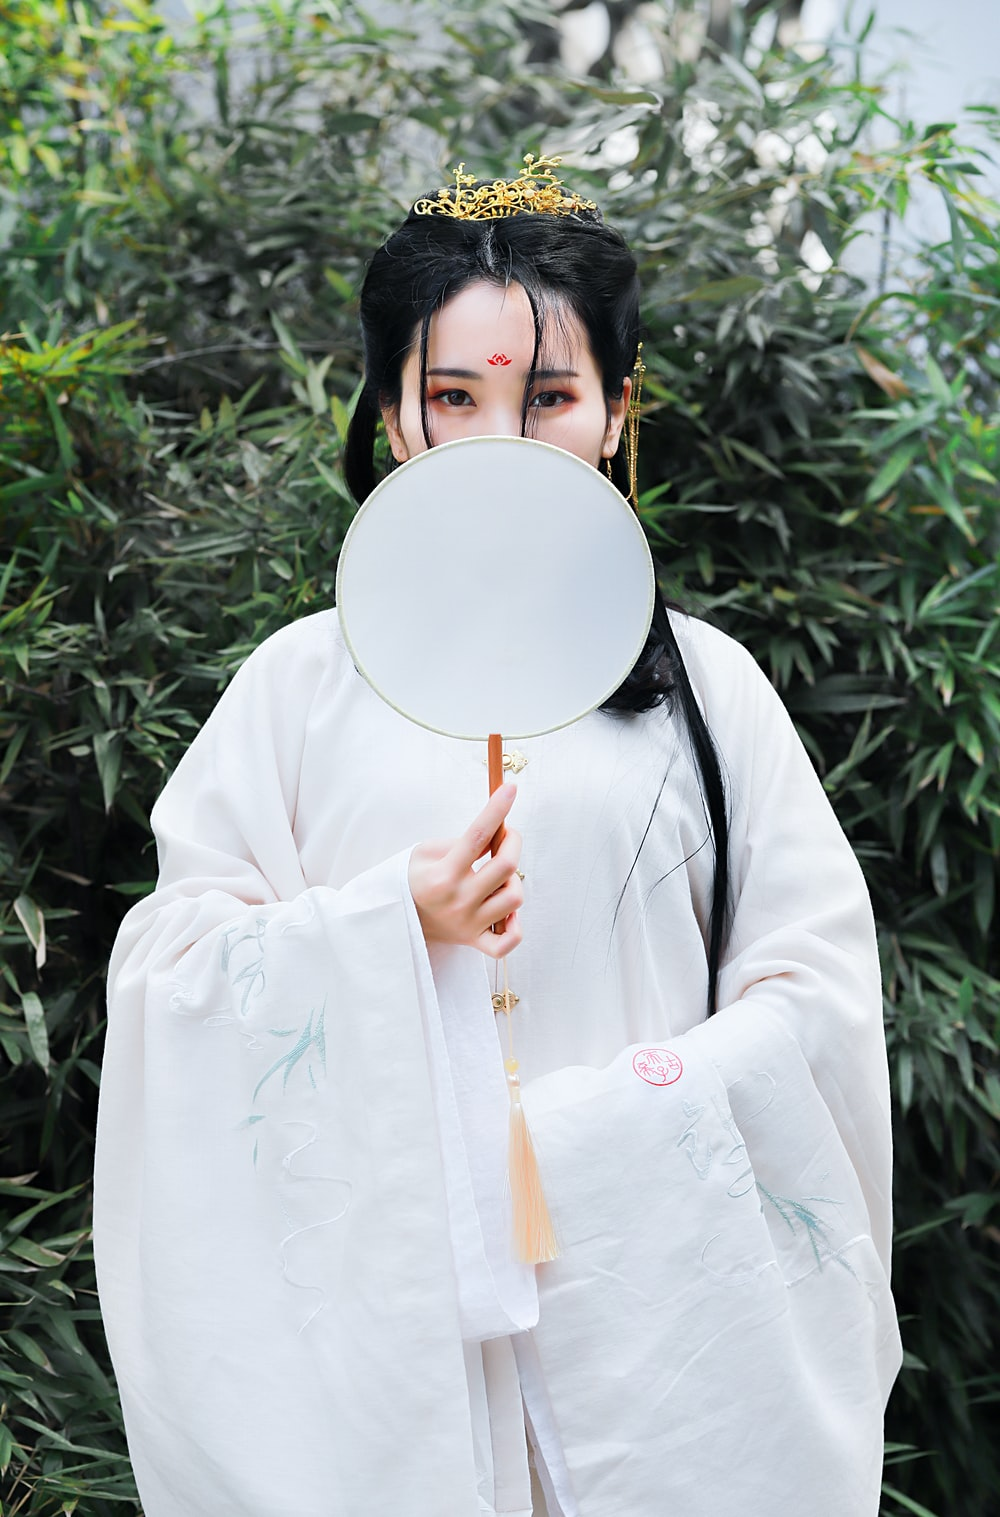 woman wearing kimono costume standing and covering her face using handfan